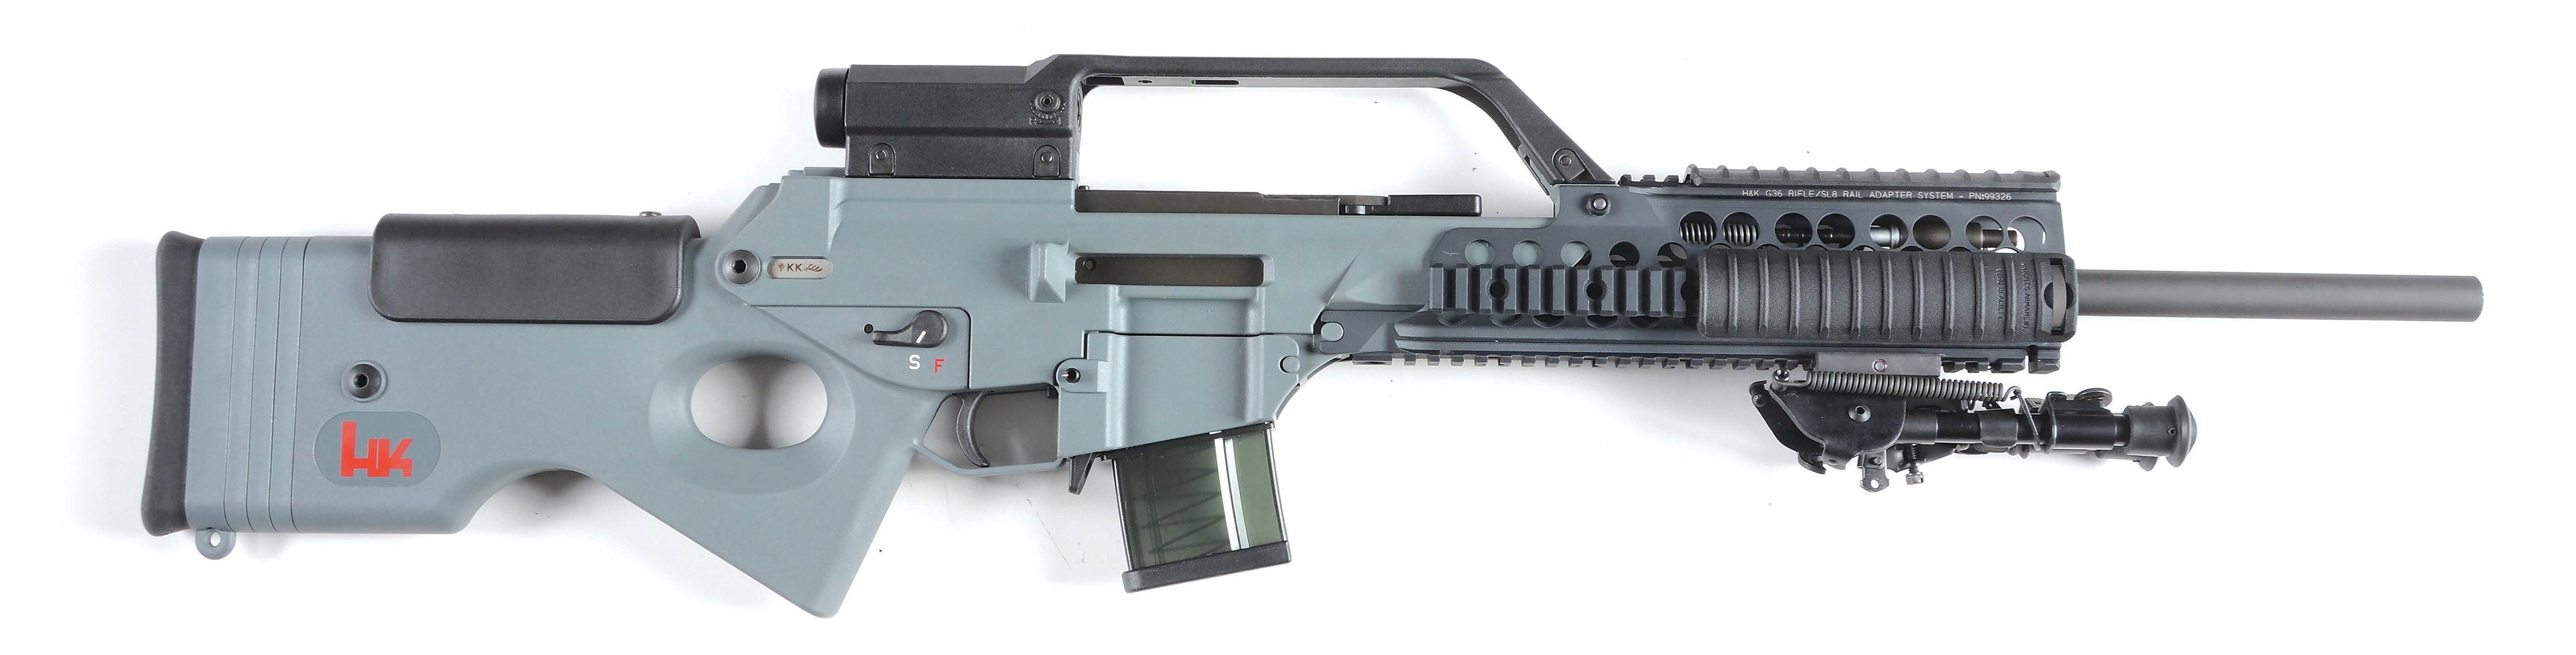 (M) HK SL8-1 Semi-Automatic Rifle.